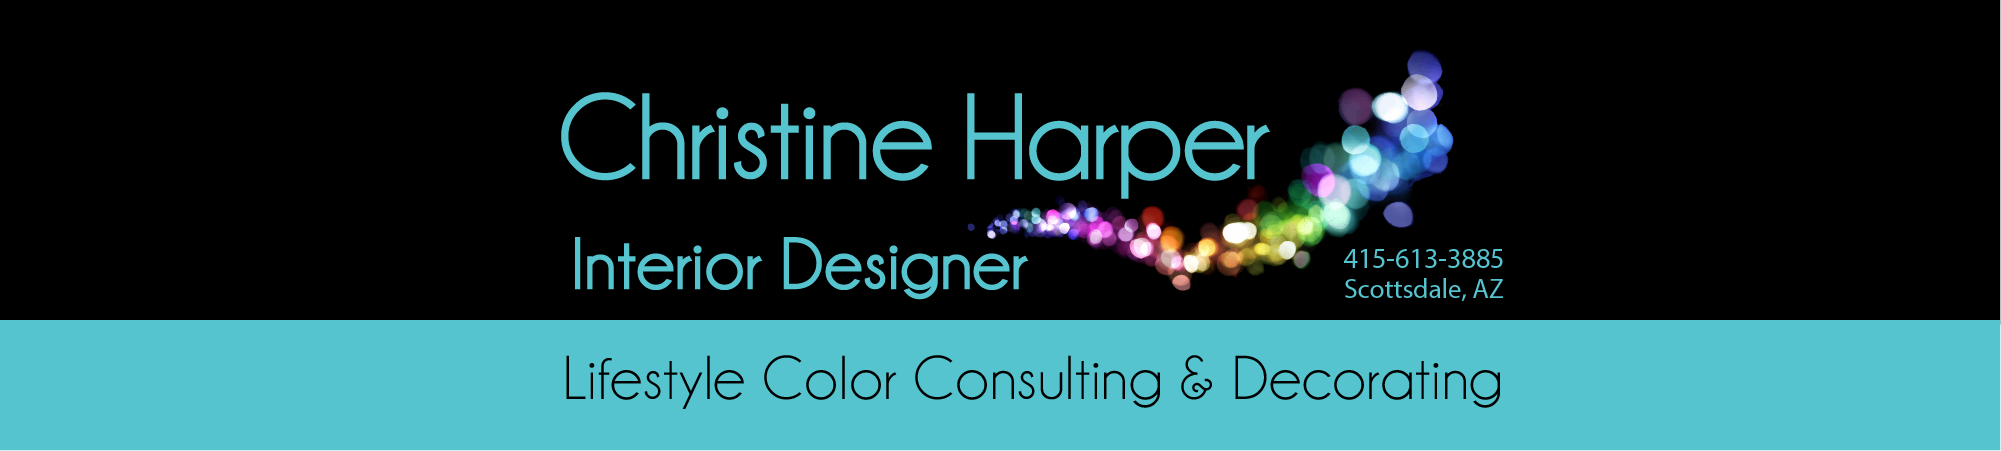 Lifestyle Color Consulting & Decorating Logo